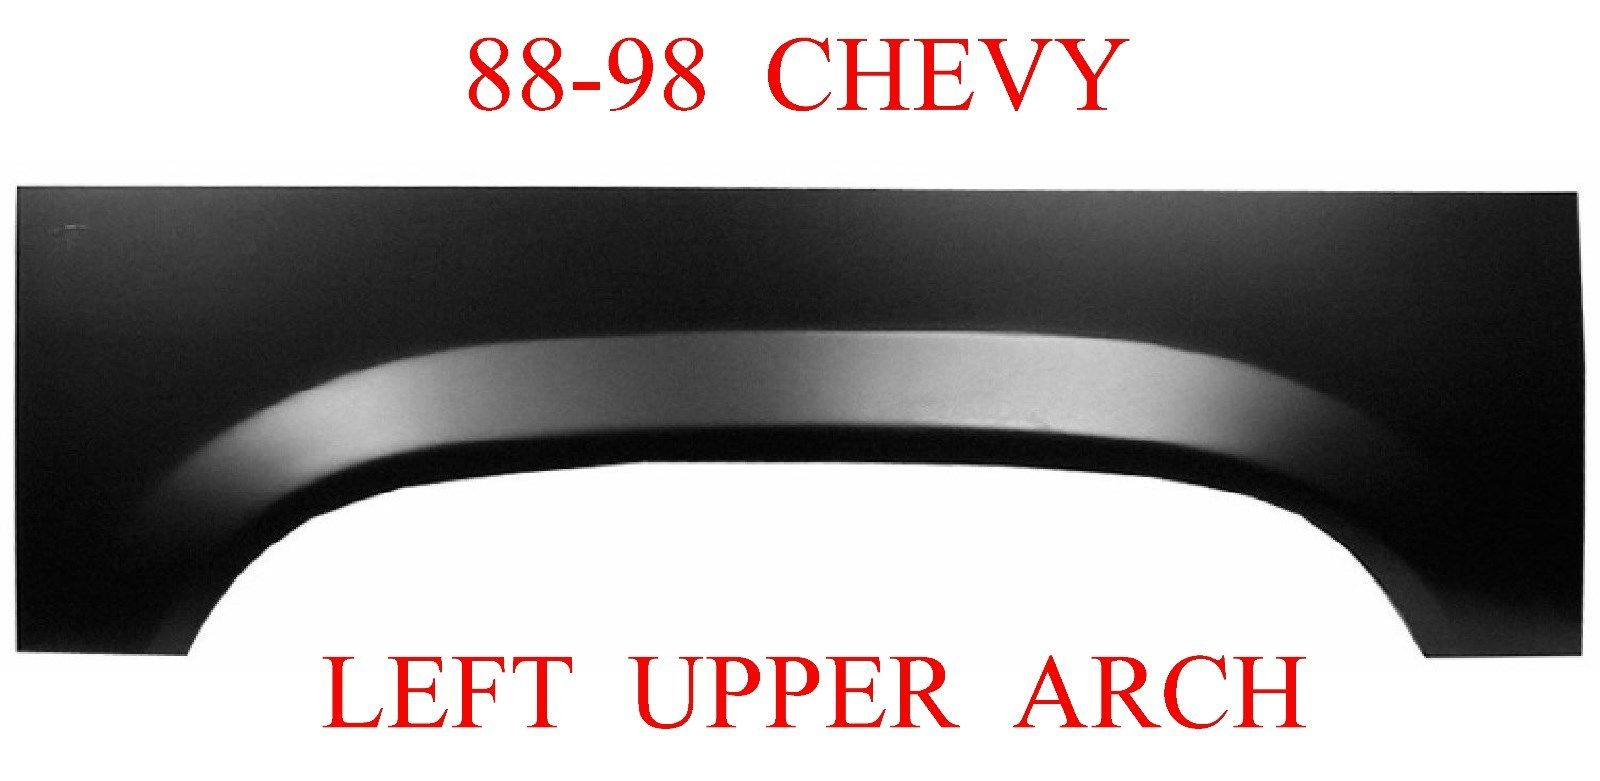 88-98 Chevy GMC Left Upper Wheel Arch Repair Panel